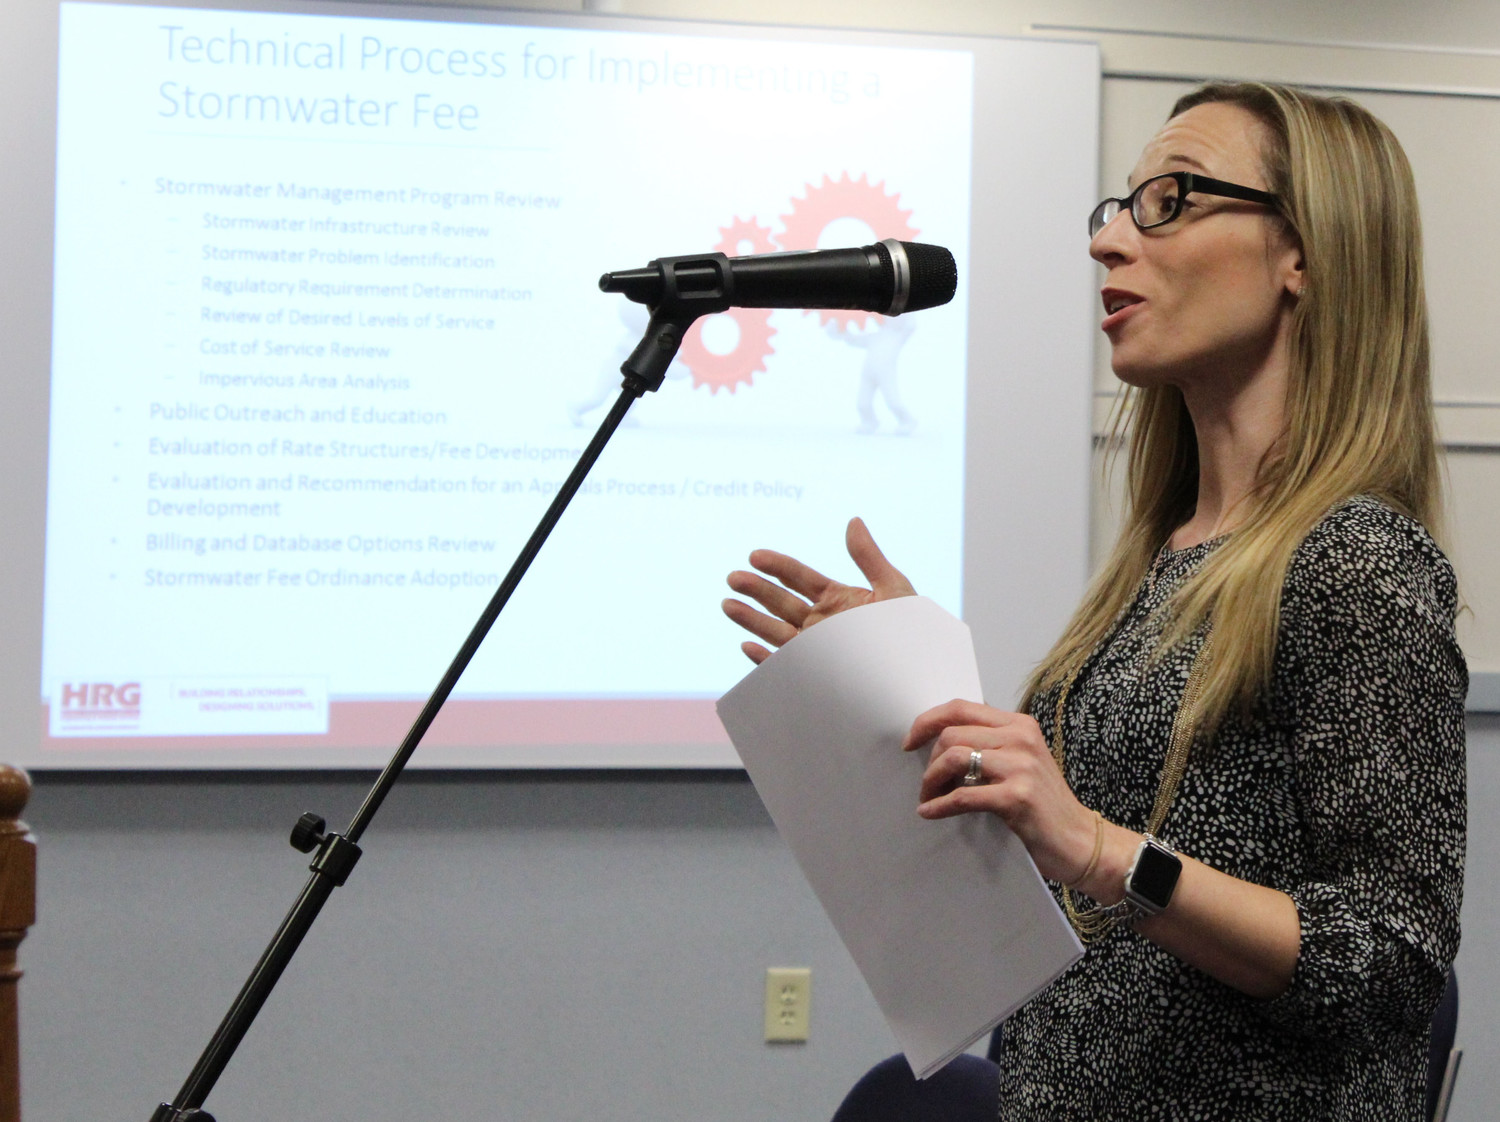 HRG's Adrienne Vicari told the Lower Swatara Board of Commissioners how to implement a stormwater fee during a meeting on April 4.